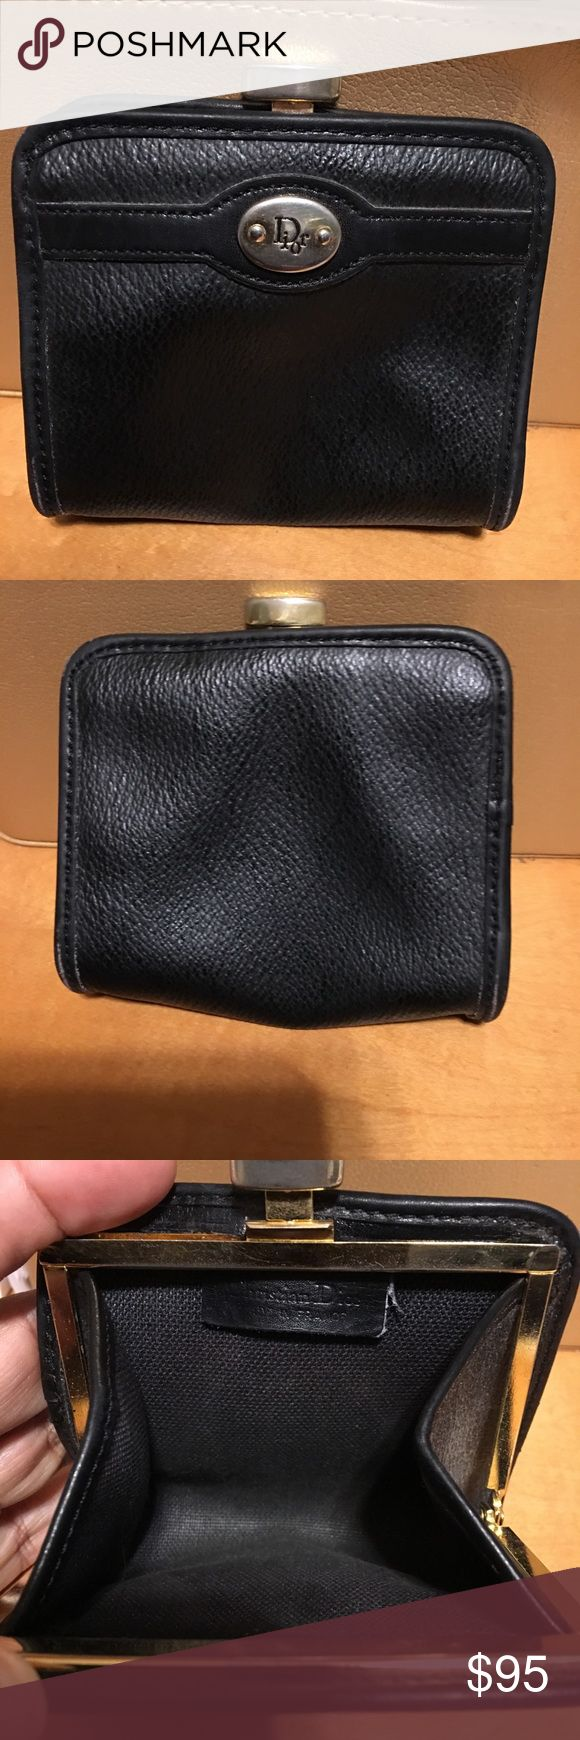 Vintage Christian Dior Leather Coin Pouch Very nice timeless piece . Some expected wear to hardware due to age . Clasp closure . Some light scuff on corners as shown . Christian Dior Bags Wallets